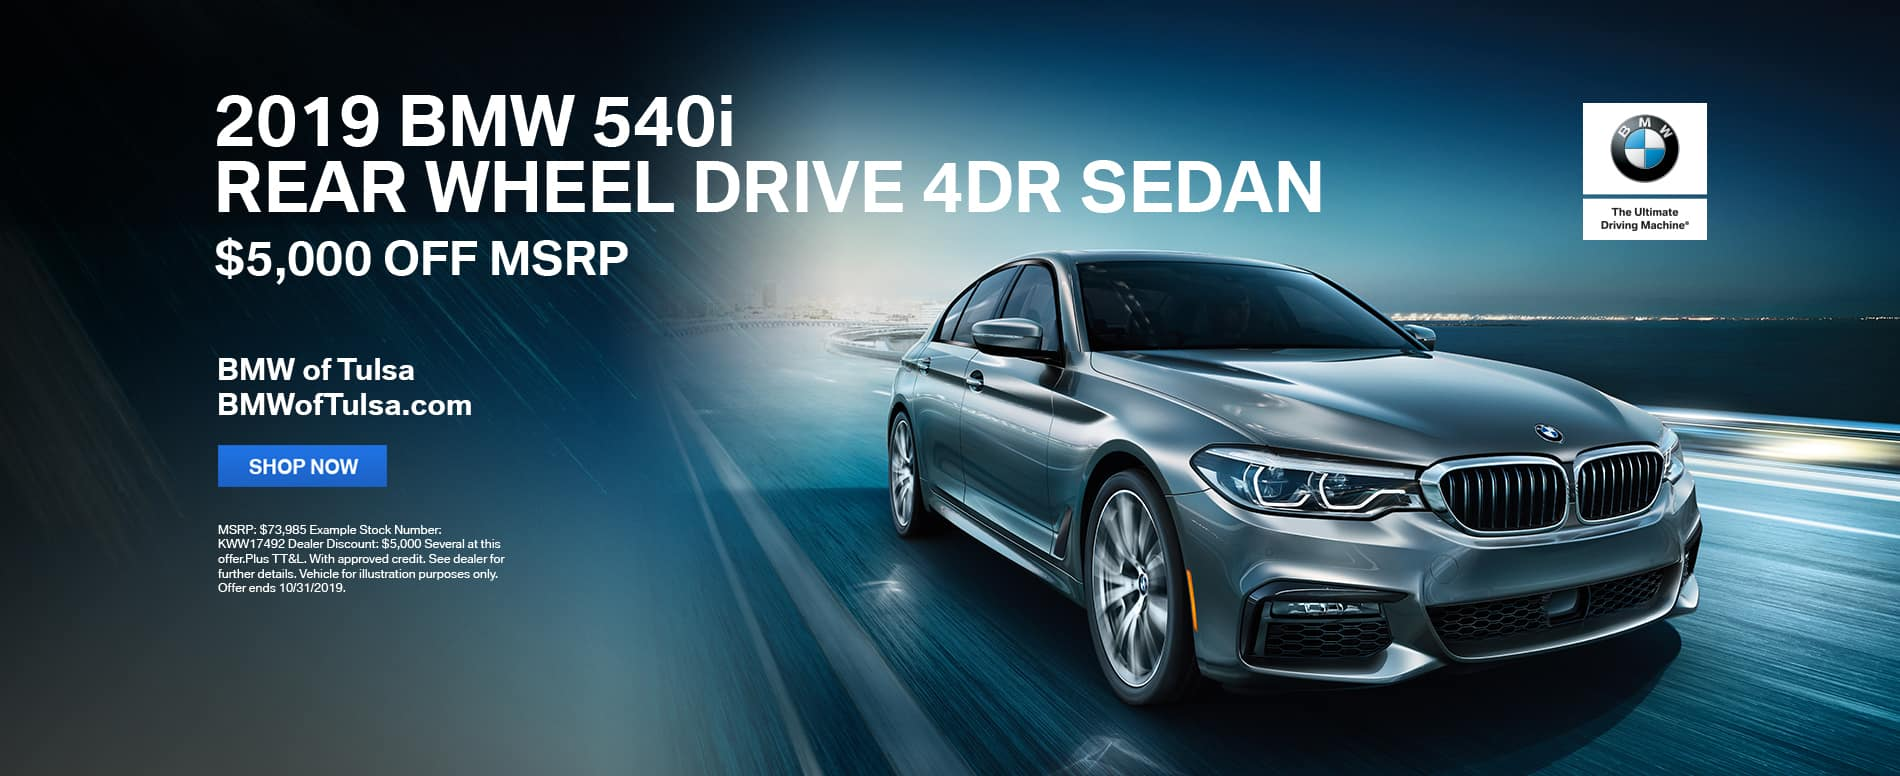 2019_BMW_Tulsa_540i_Offer